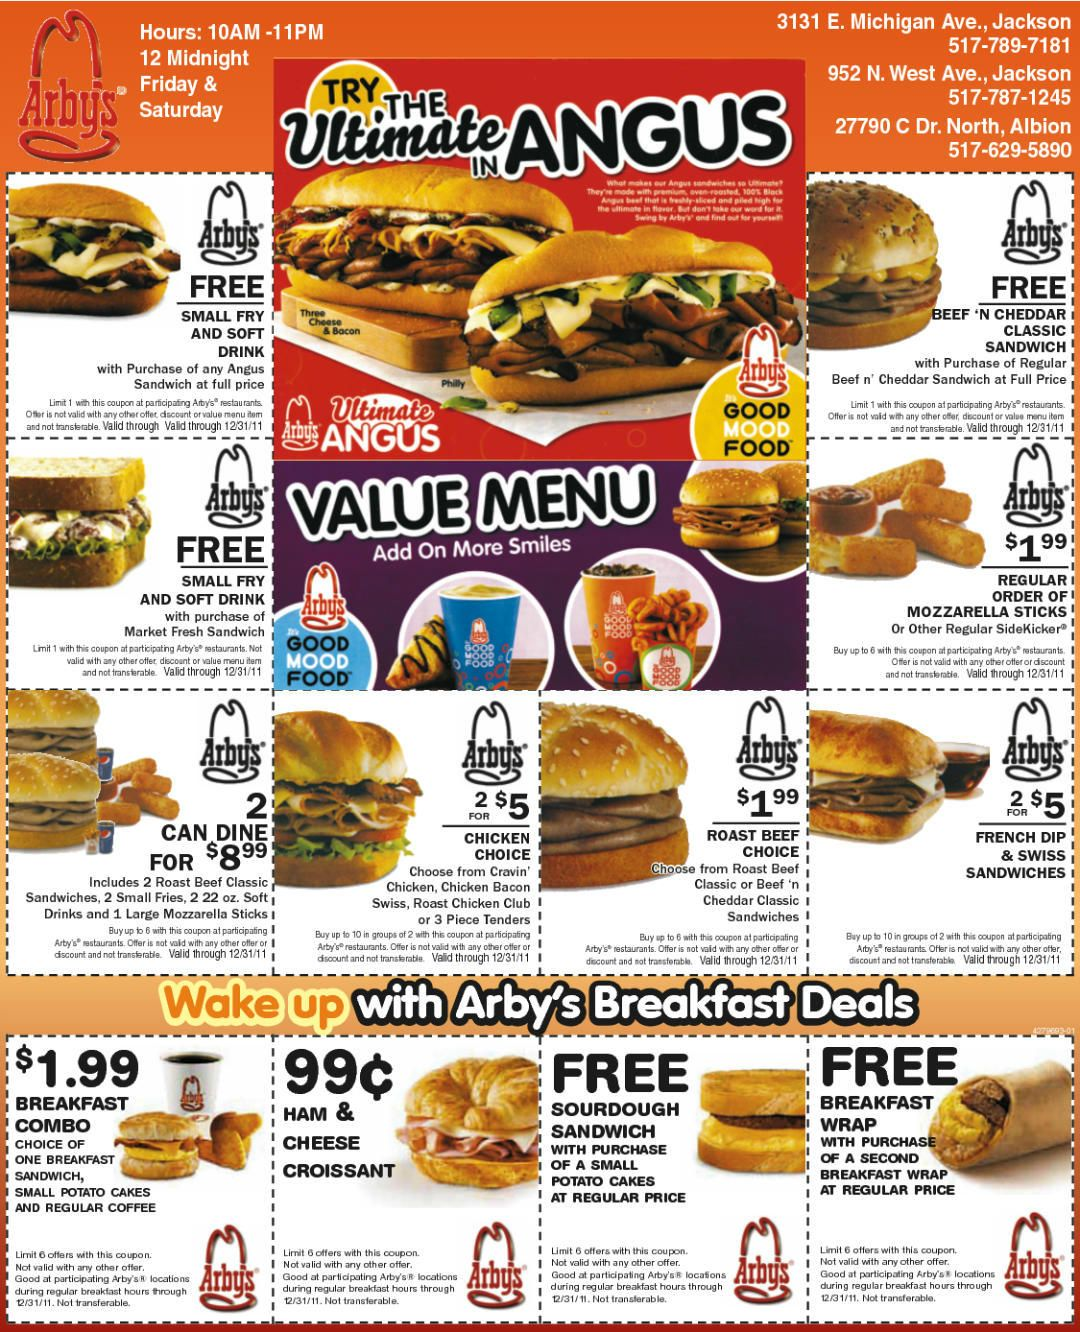 photograph about Printable Arbys Coupons named printable free of charge Arbys discount coupons for June Coupon Photos